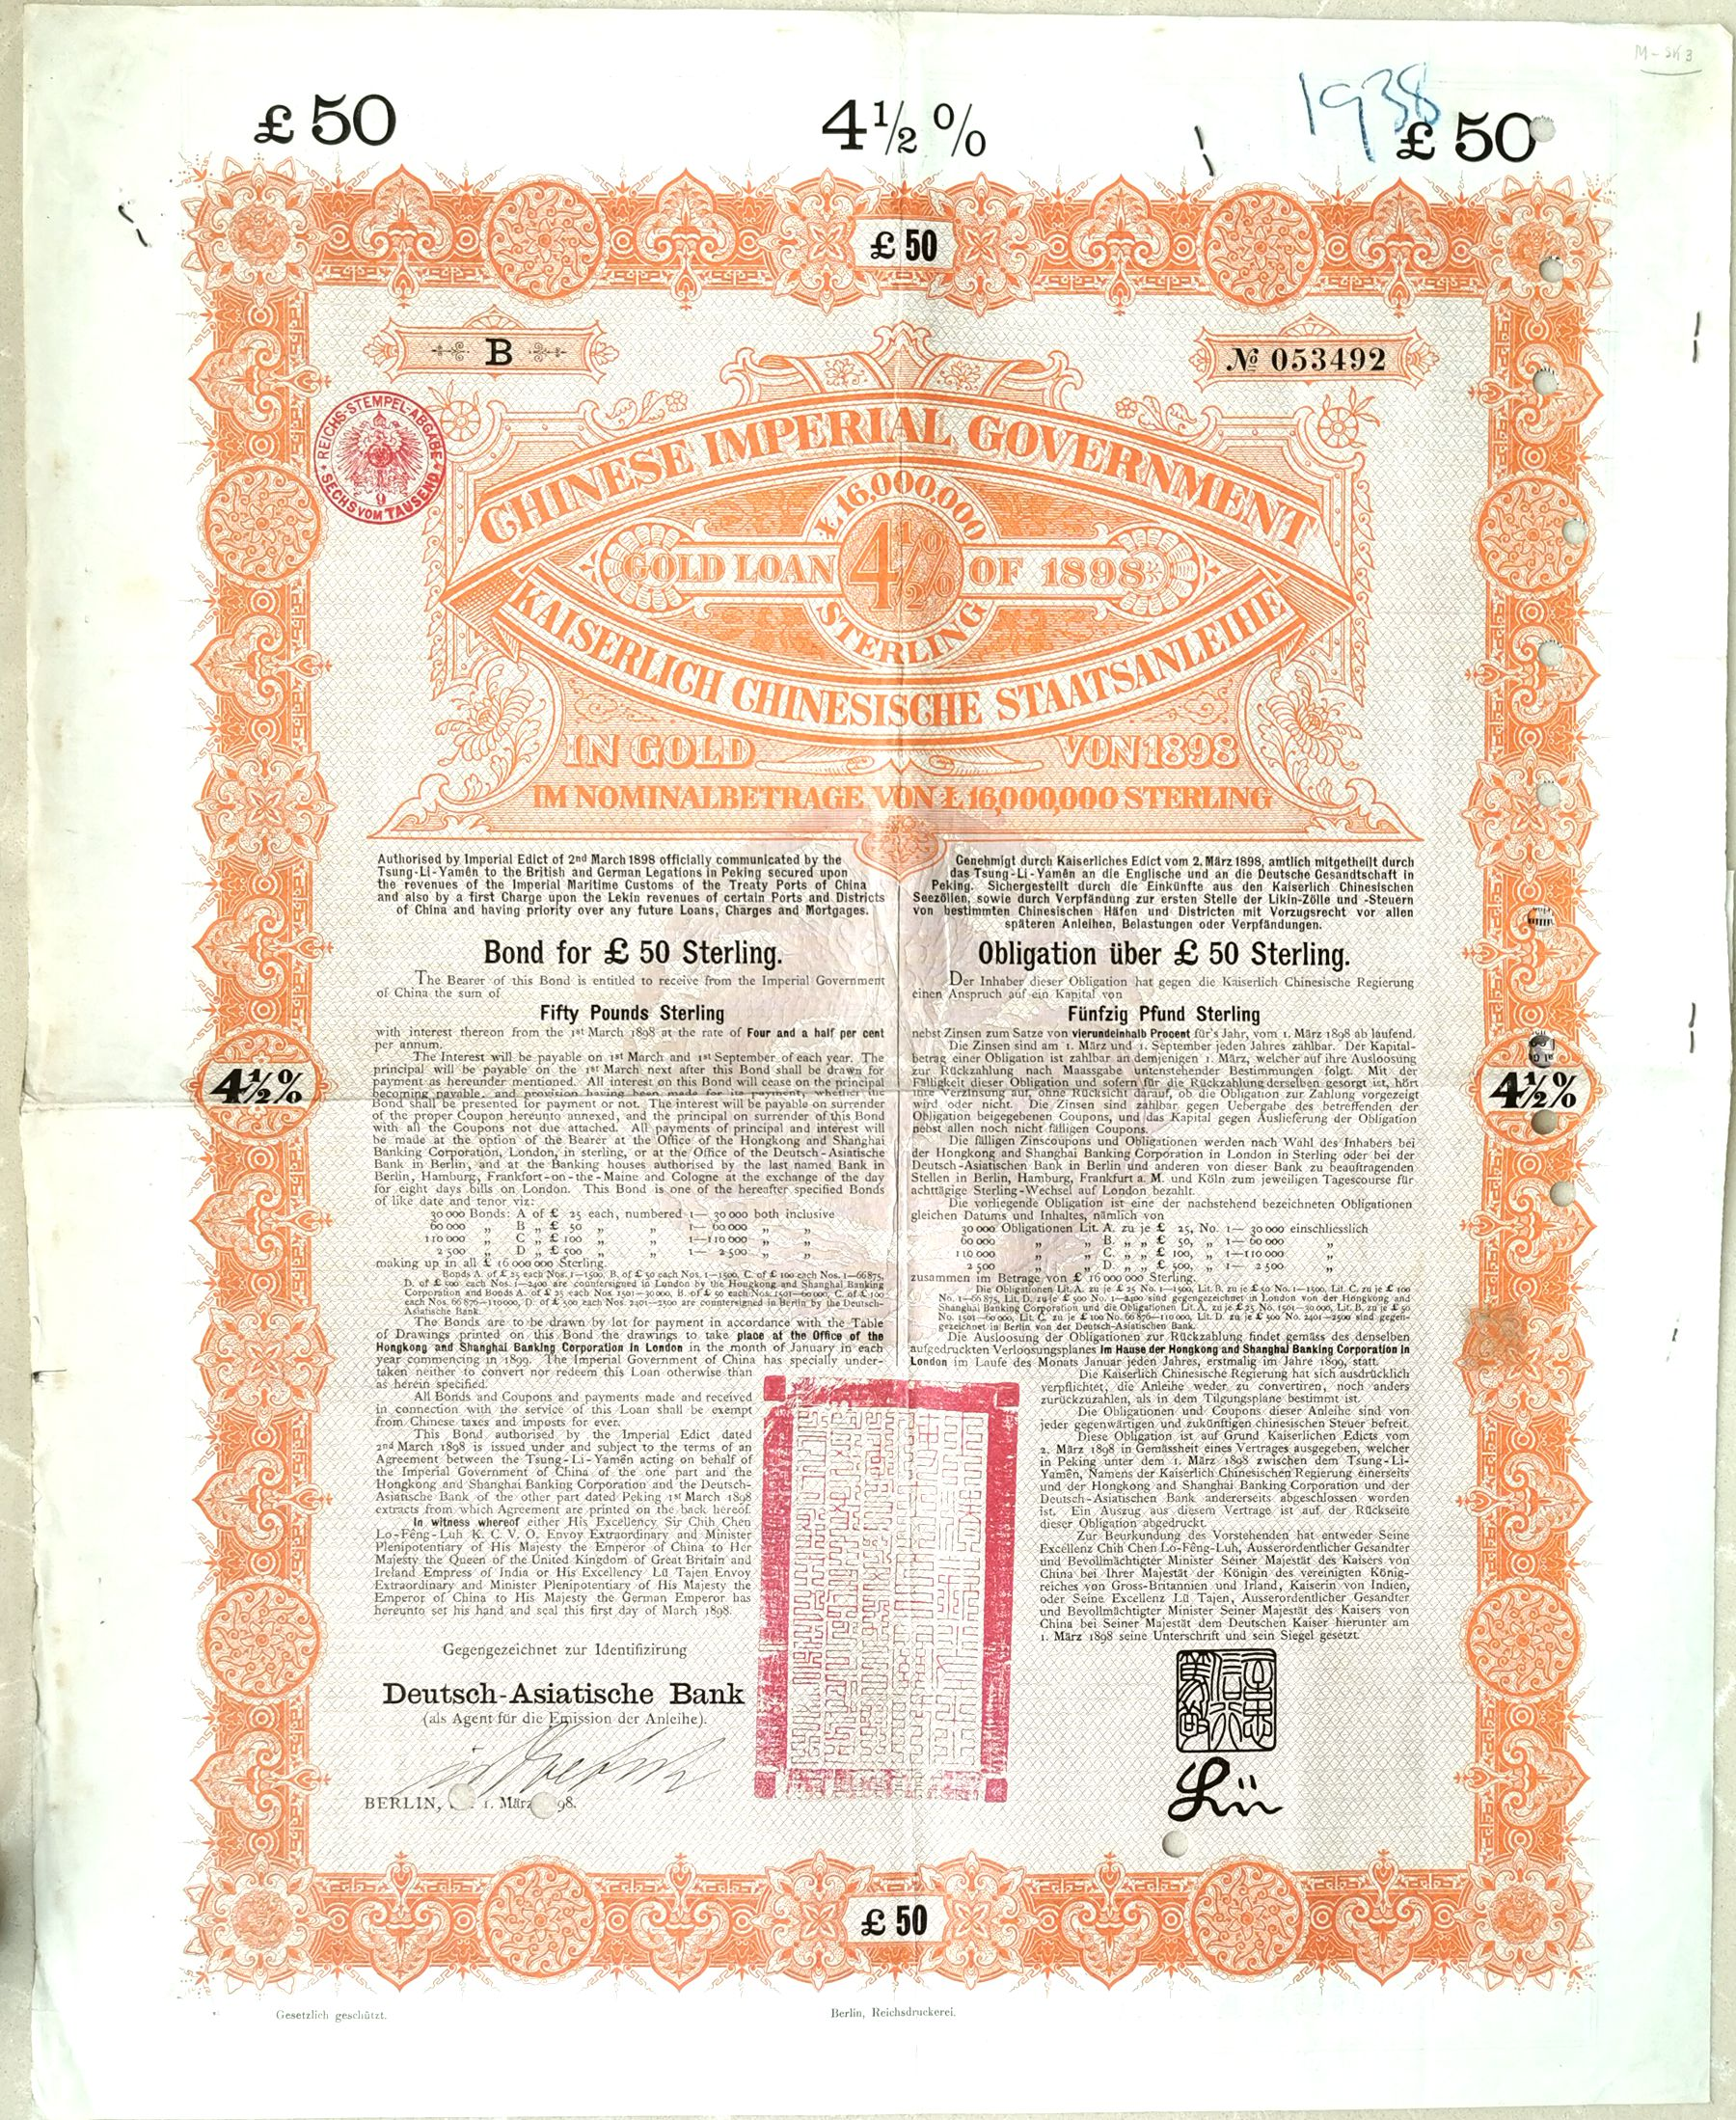 B9630, China Government Gold Loan 4.5% Bonds, £25, £50 and £100, Deutsch 1898